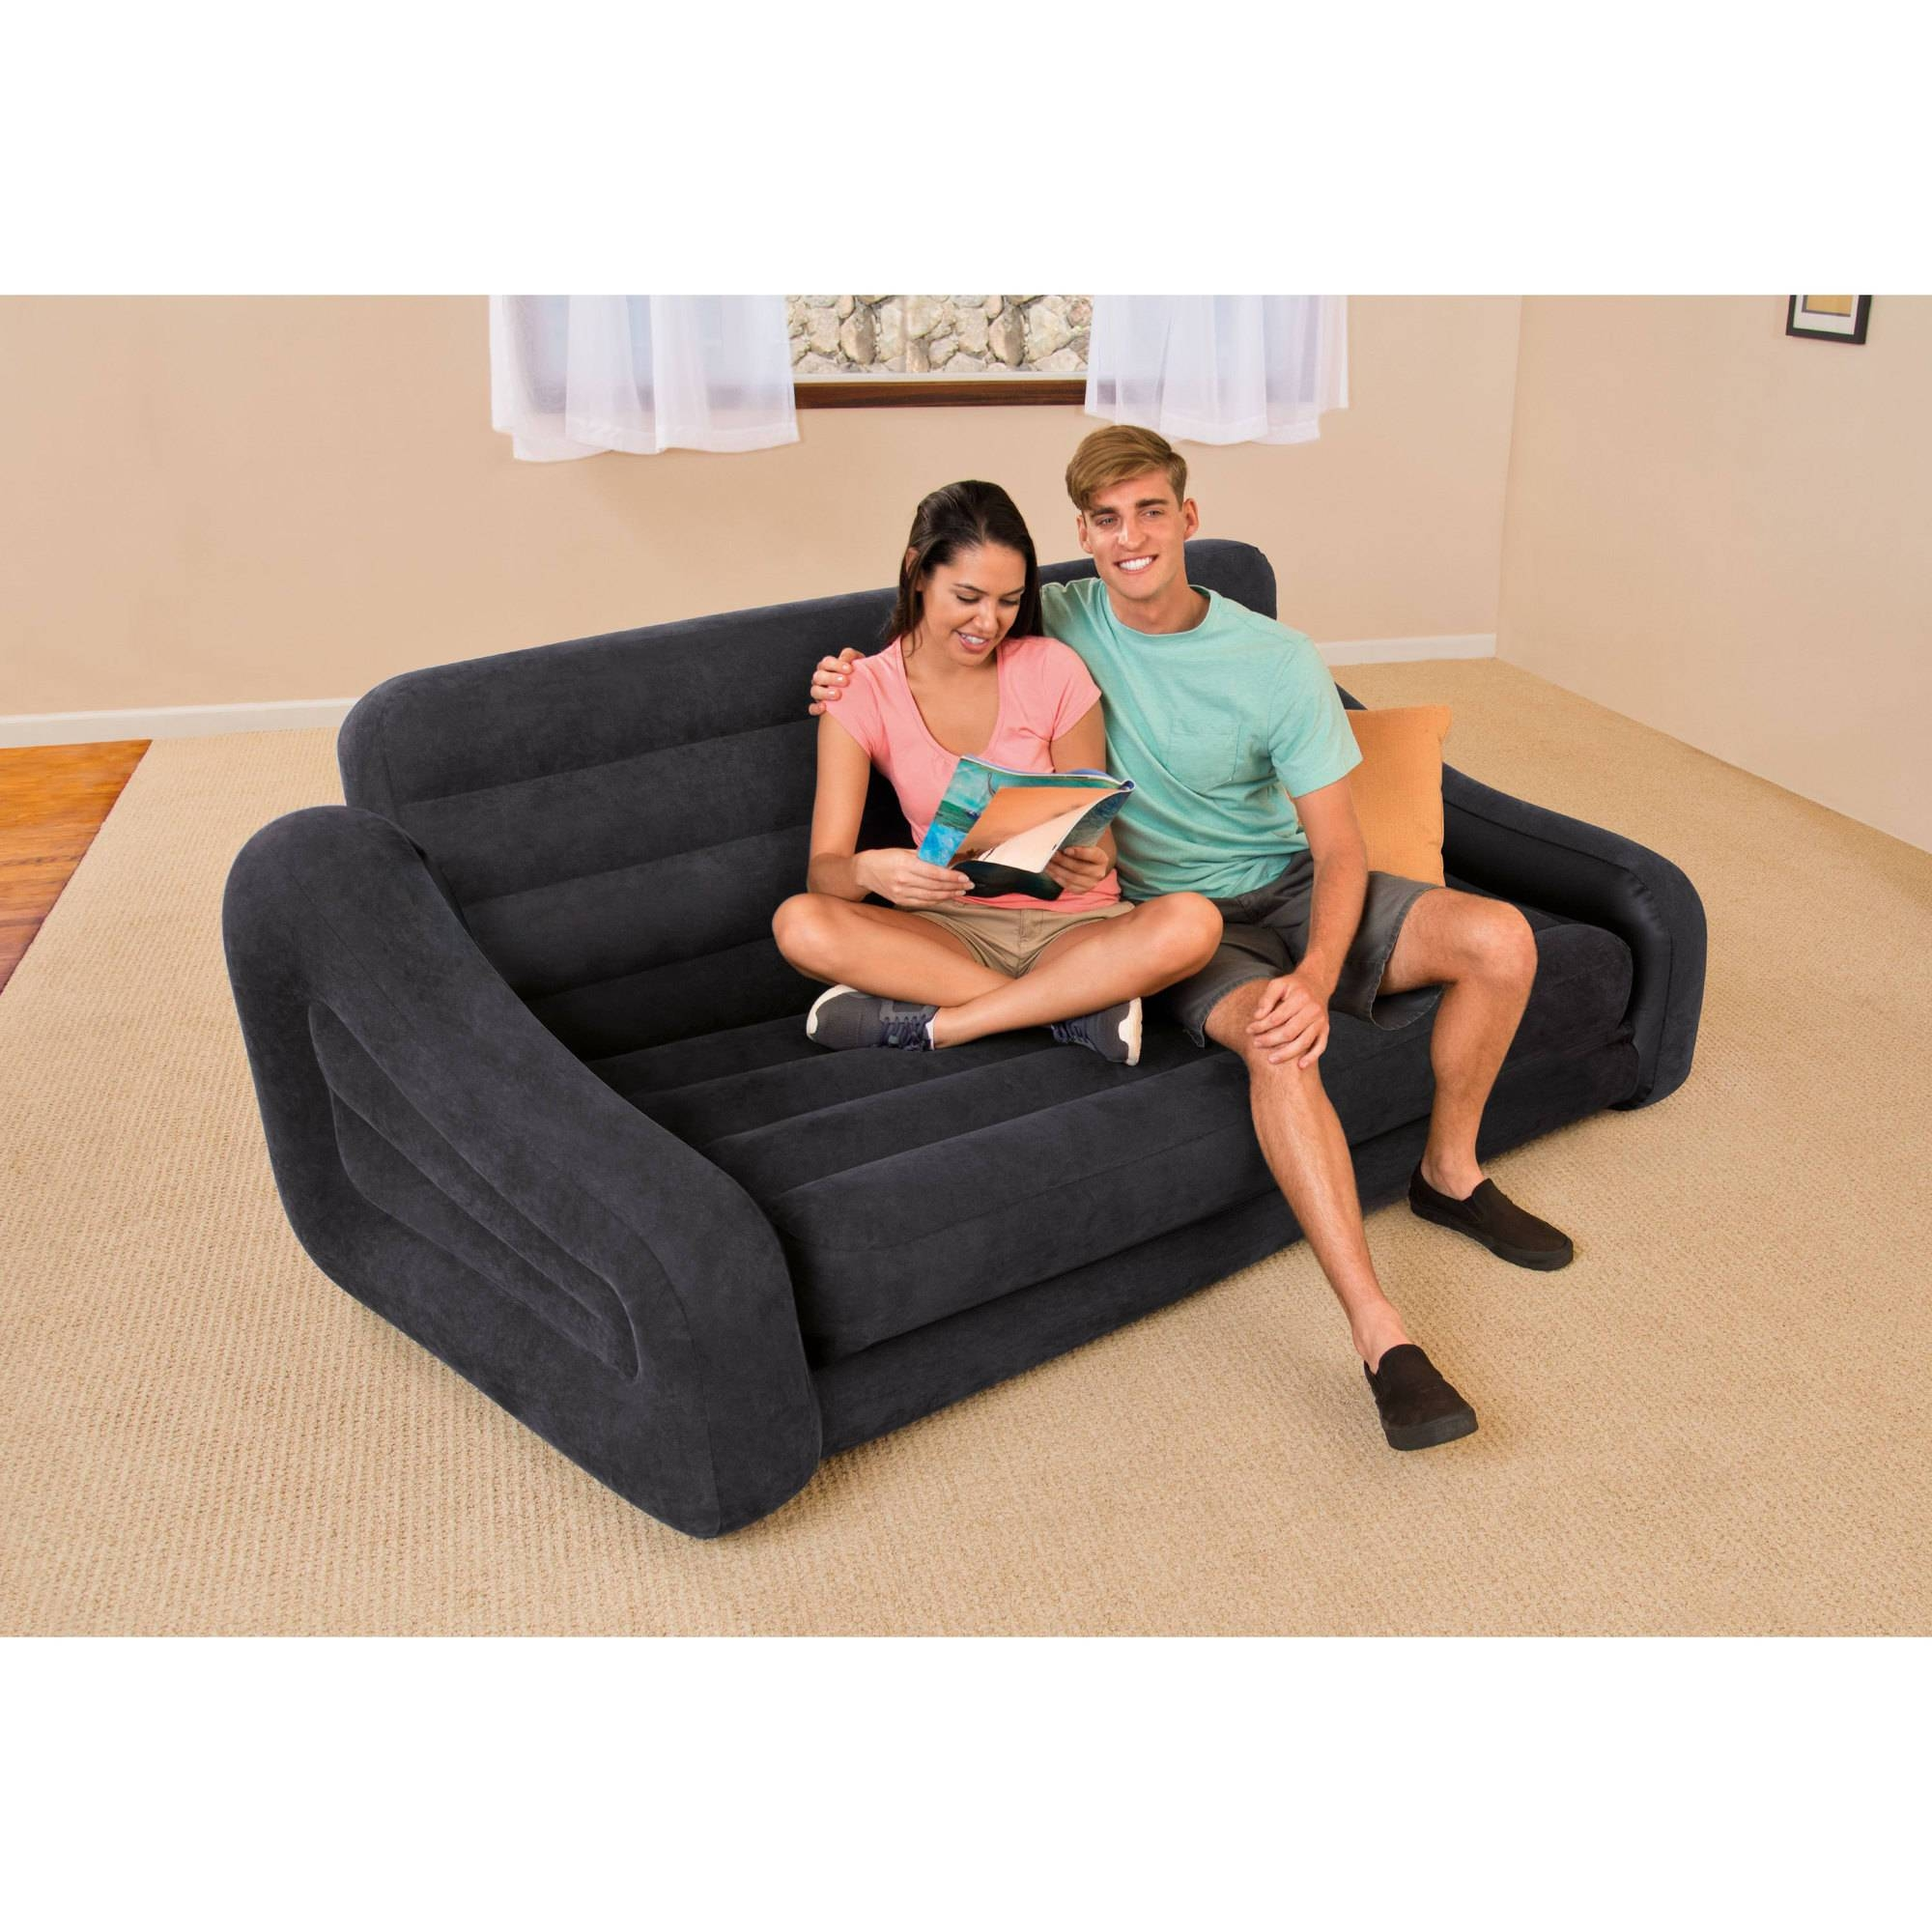 Intex Queen Inflatable Pull Out Sofa Bed – Walmart Throughout Intex Queen Sleeper Sofas (View 12 of 15)